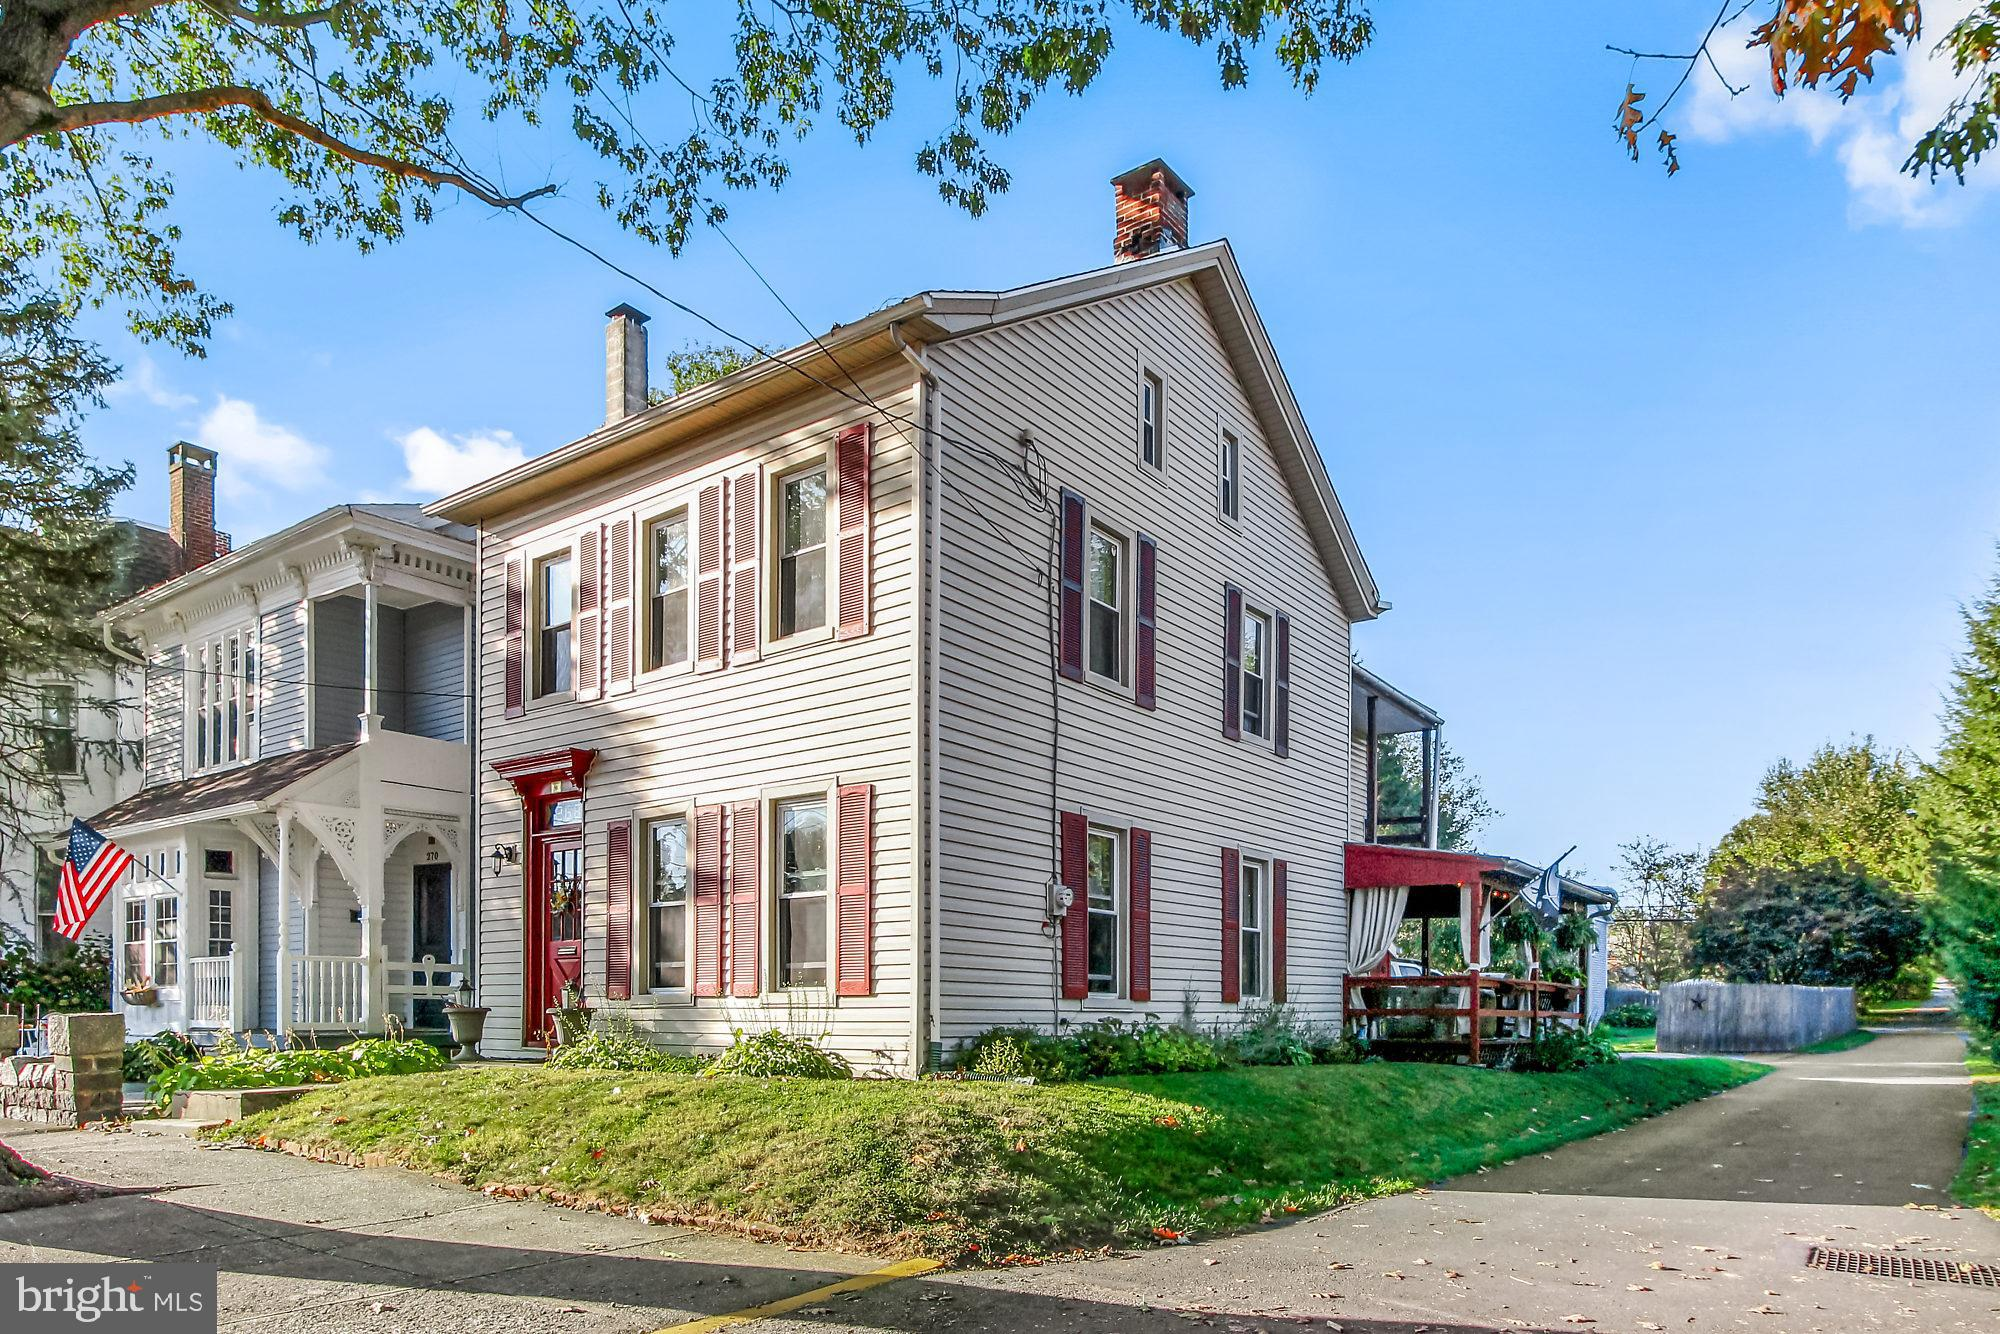 Beautiful home from circa 1800!